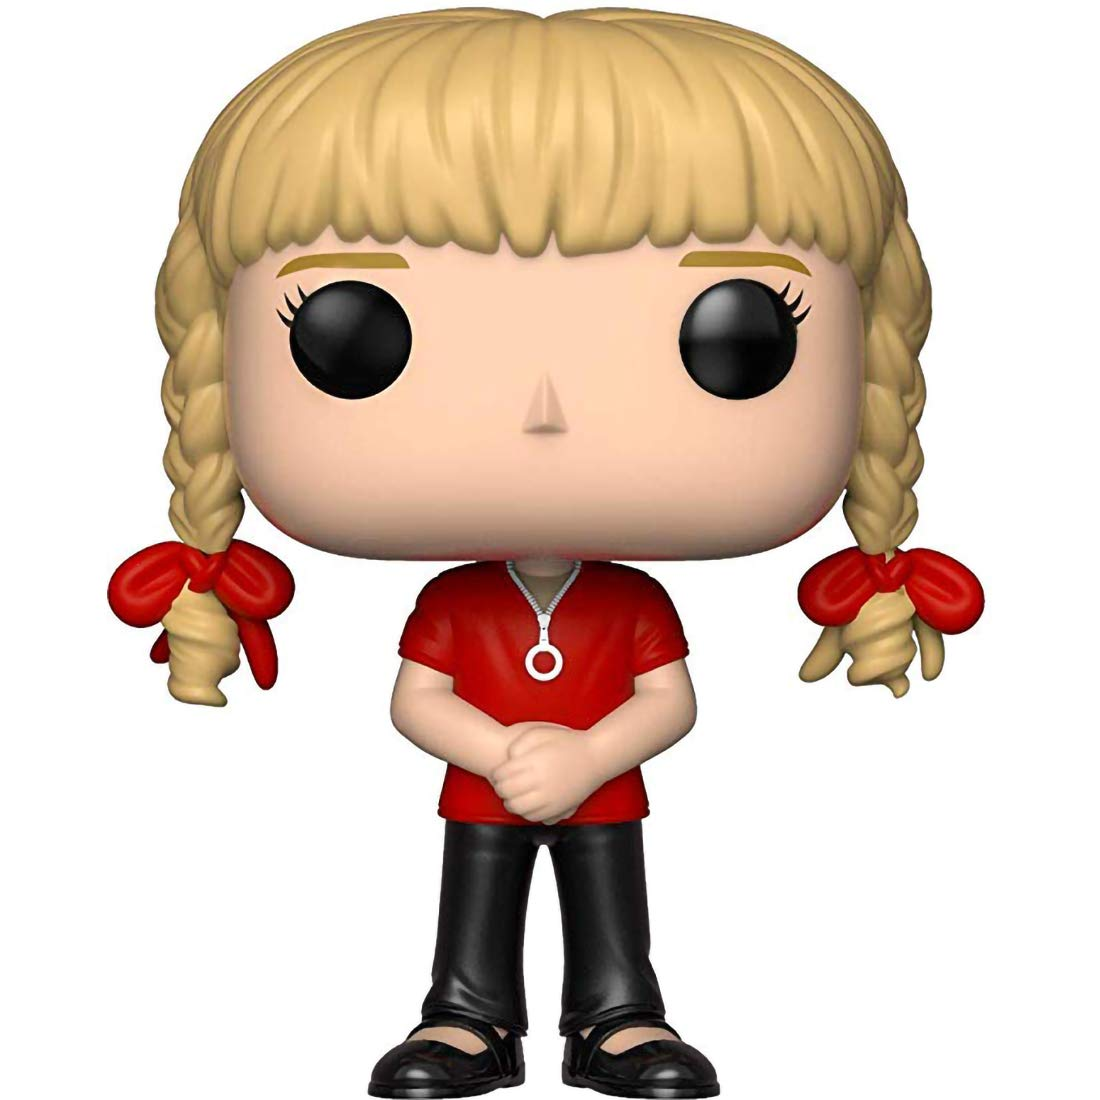 Funko Cindy Brady: Brady Bunch x POP #696 // 33962 - B BCC94YA5 TV Vinyl Figure /& 1 PET Plastic Graphical Protector Bundle